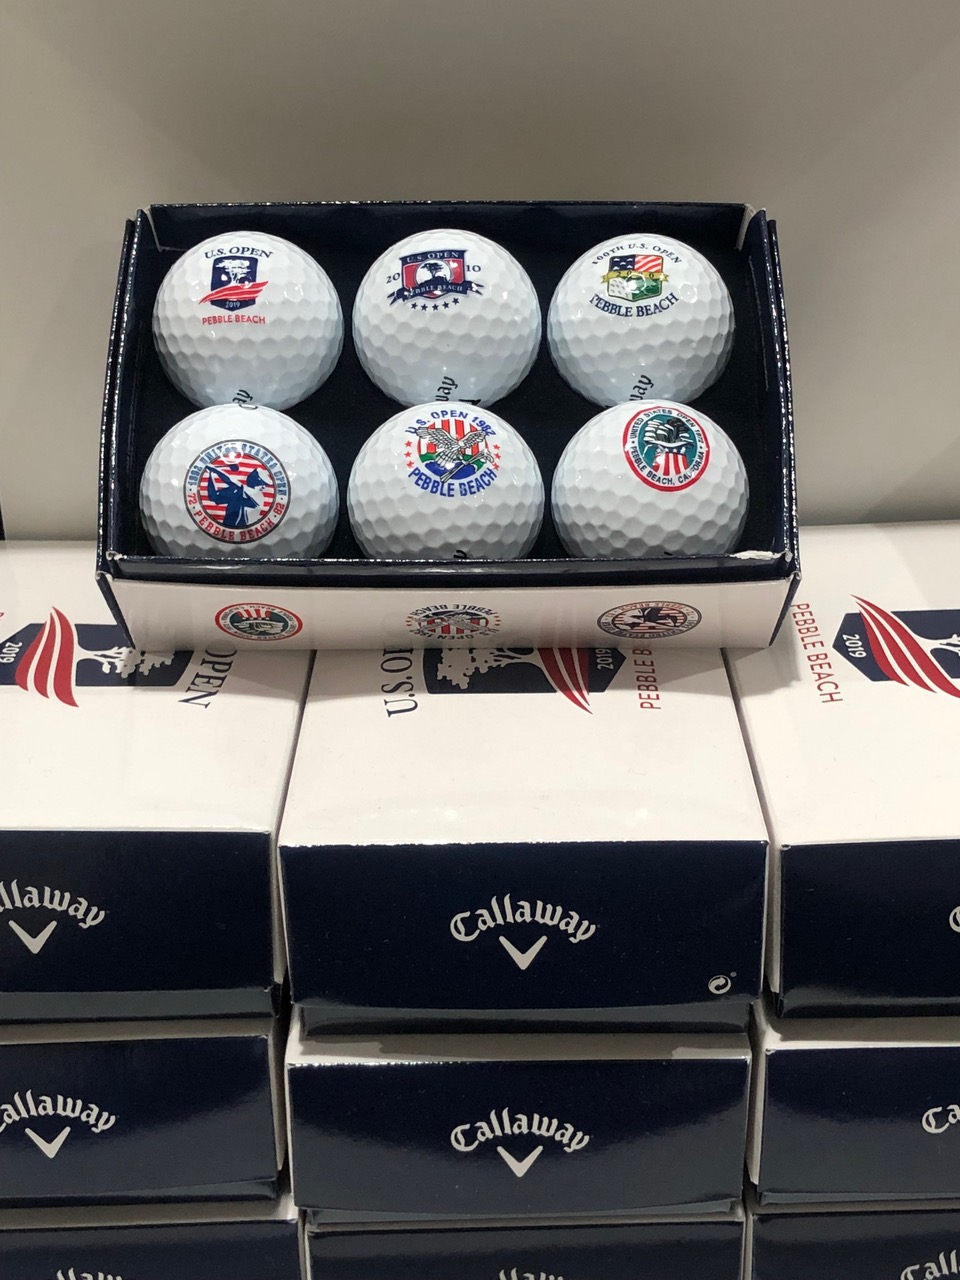 Even with so many historic and unforgettable U.S. Opens, the only sign of previous playings is this collection of Callaway Chrome Softs ($32)